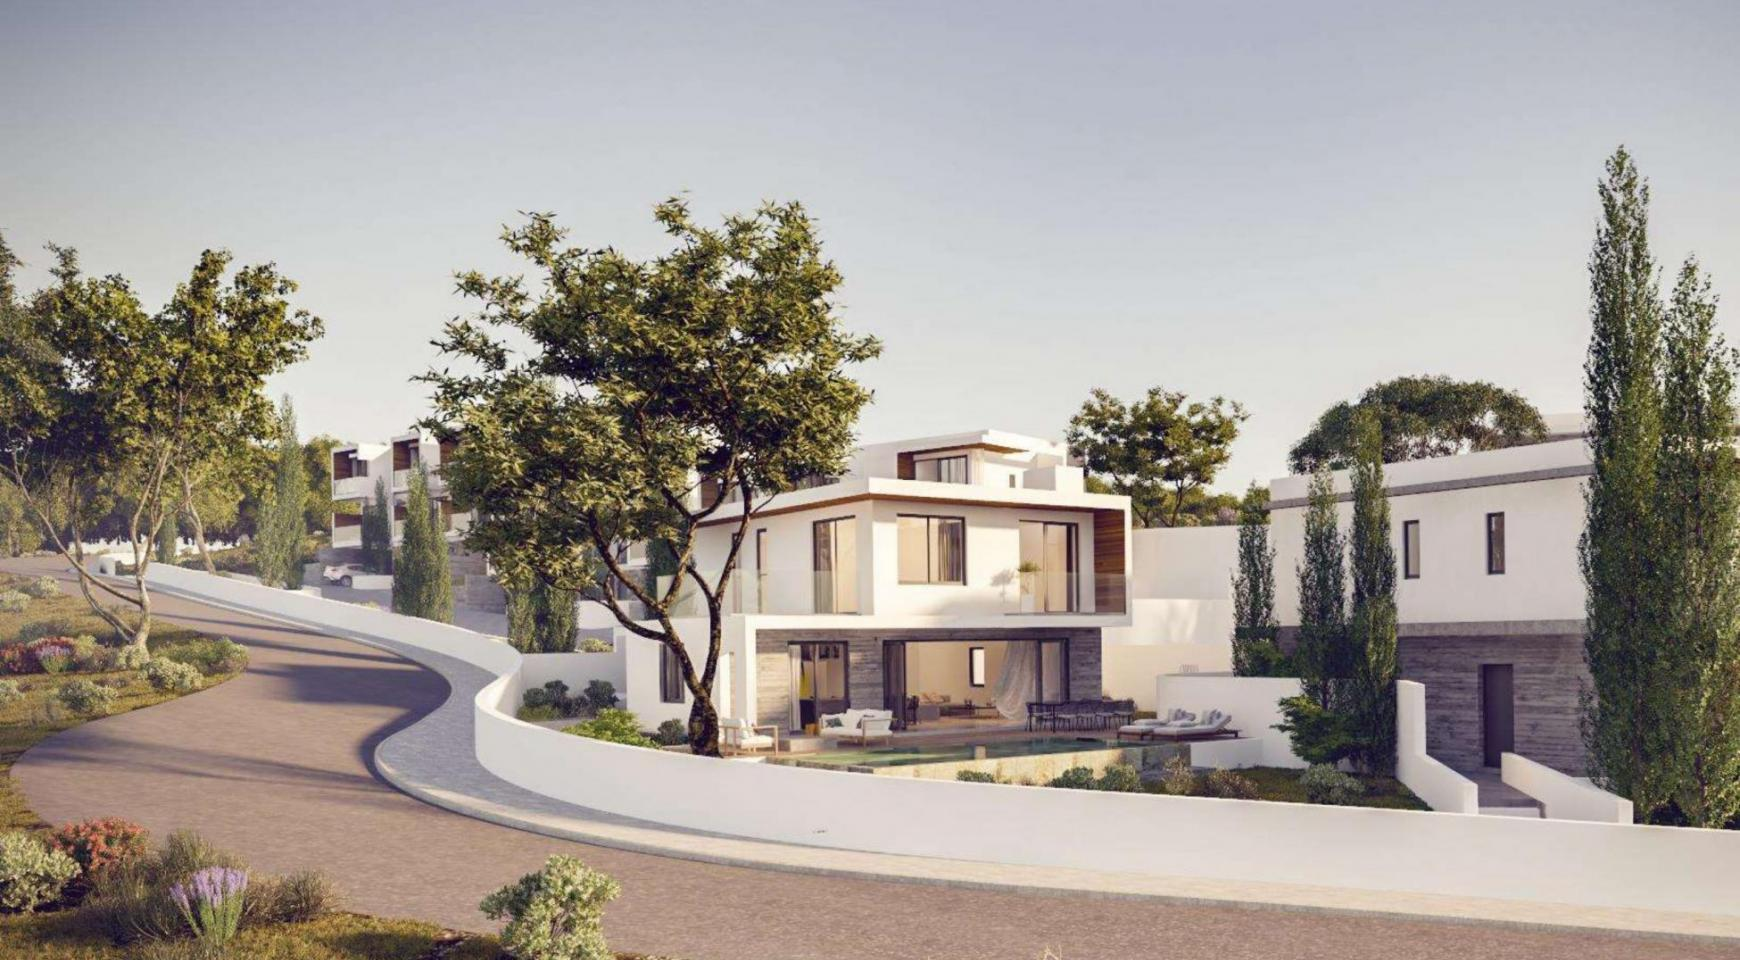 4 Bedroom Villa within a New Project in Agios Tychonas Area - 11